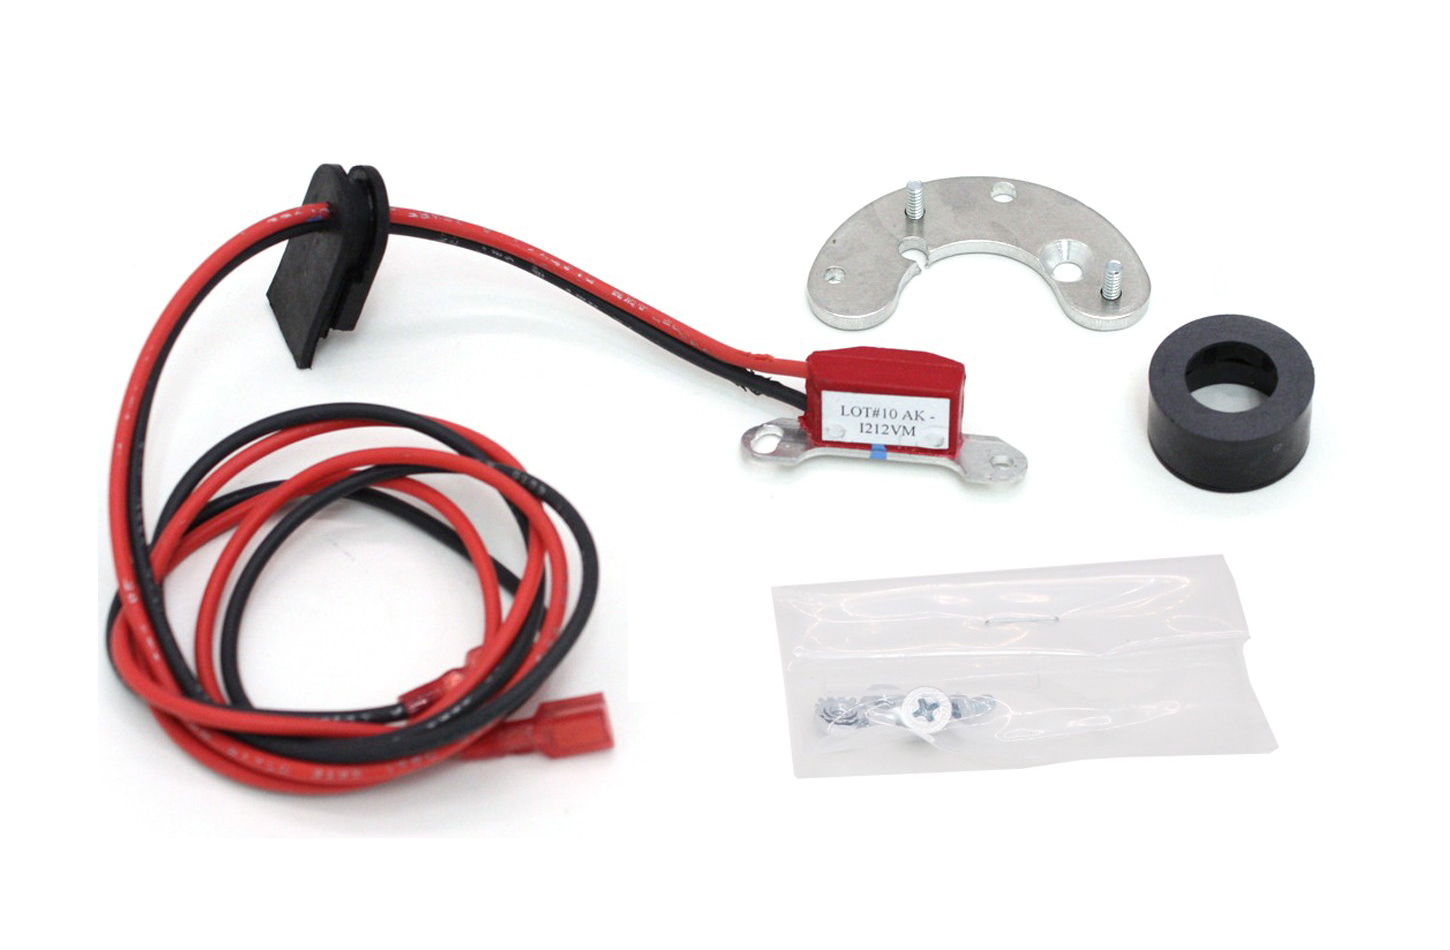 Pertronix Ignition 9LU-166A Ignition Conversion Kit, Ignitor II, Points to Electronic, Magnetic Trigger, Lucas 6-Cylinder, Kit